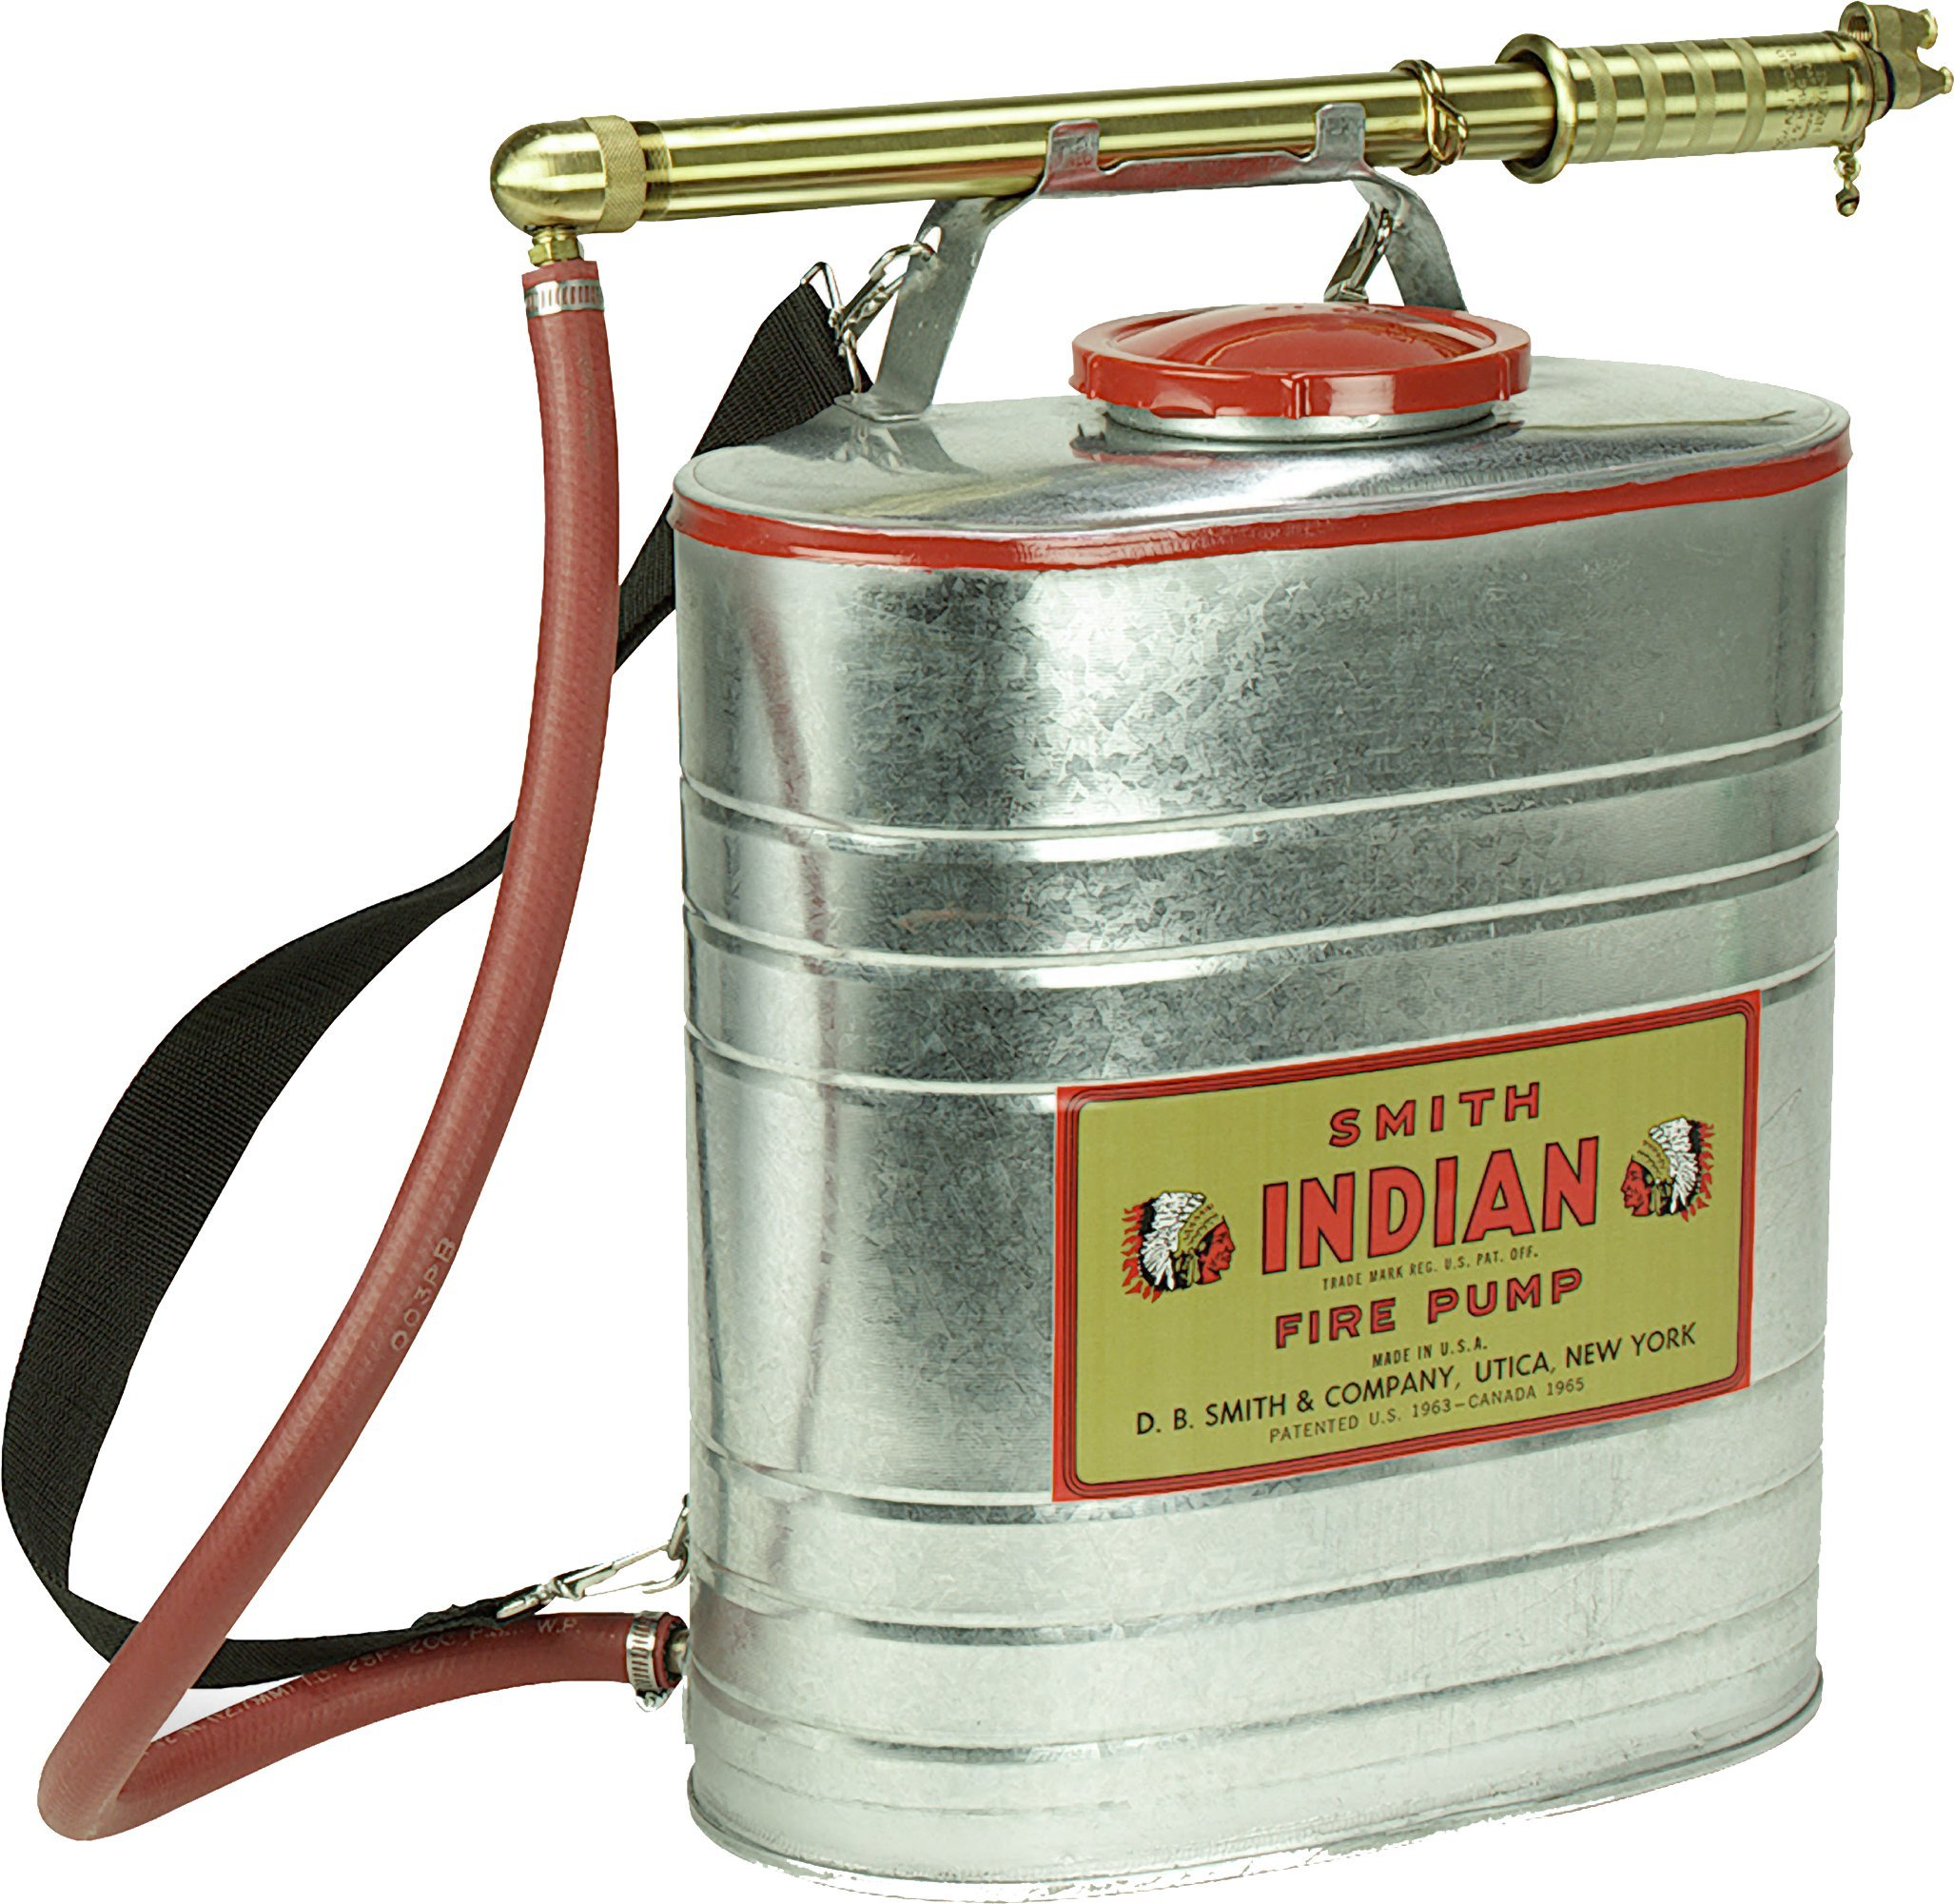 Indian 90G Galvanized Fire Pump with Smith Pump, 5-Gallon by Indian